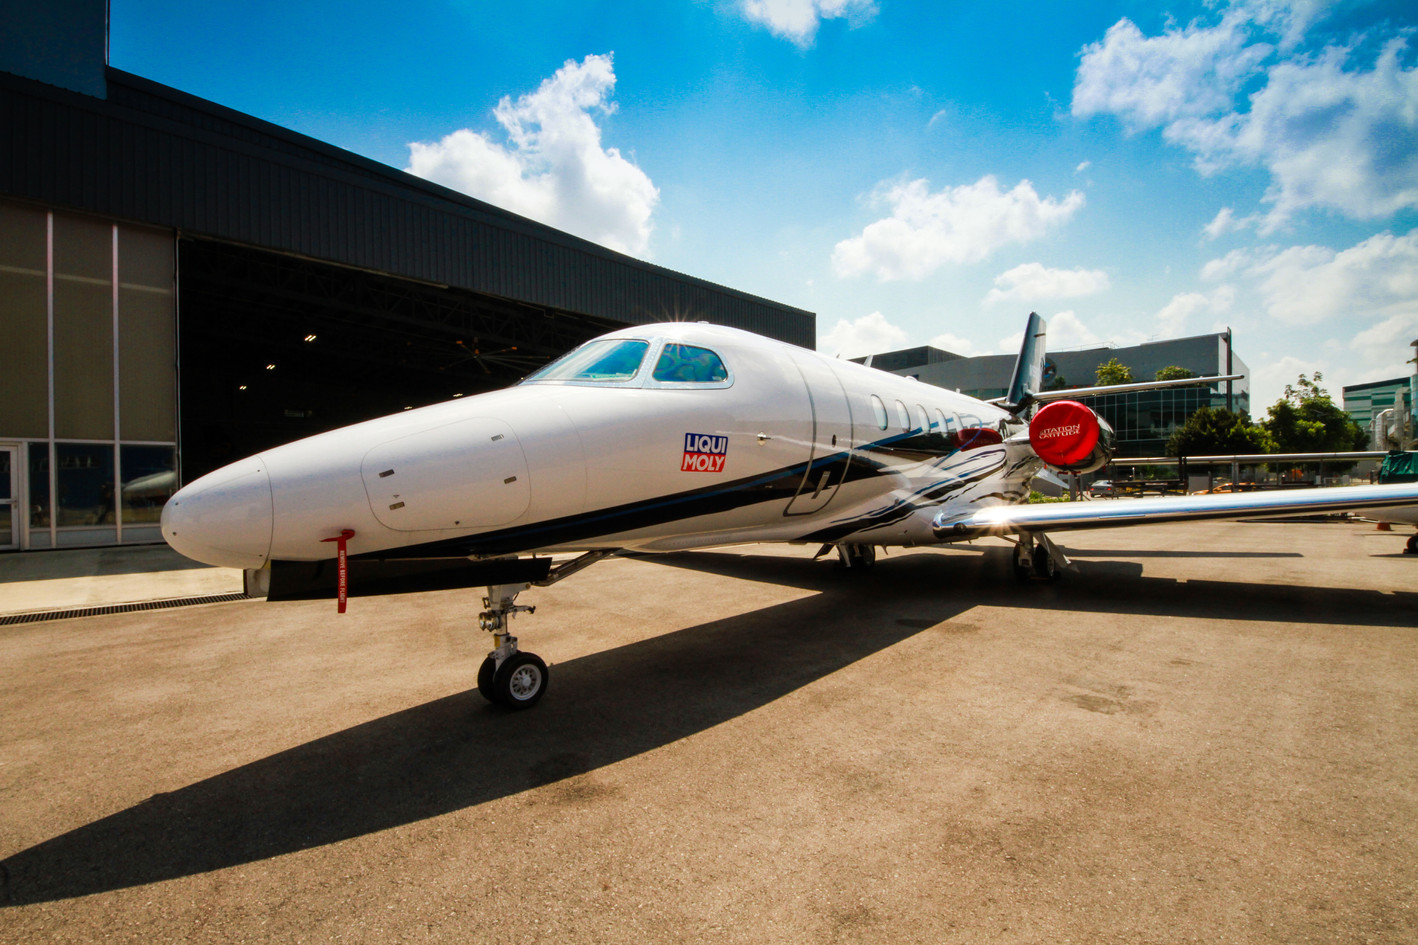 Top-notch destination for private flyers